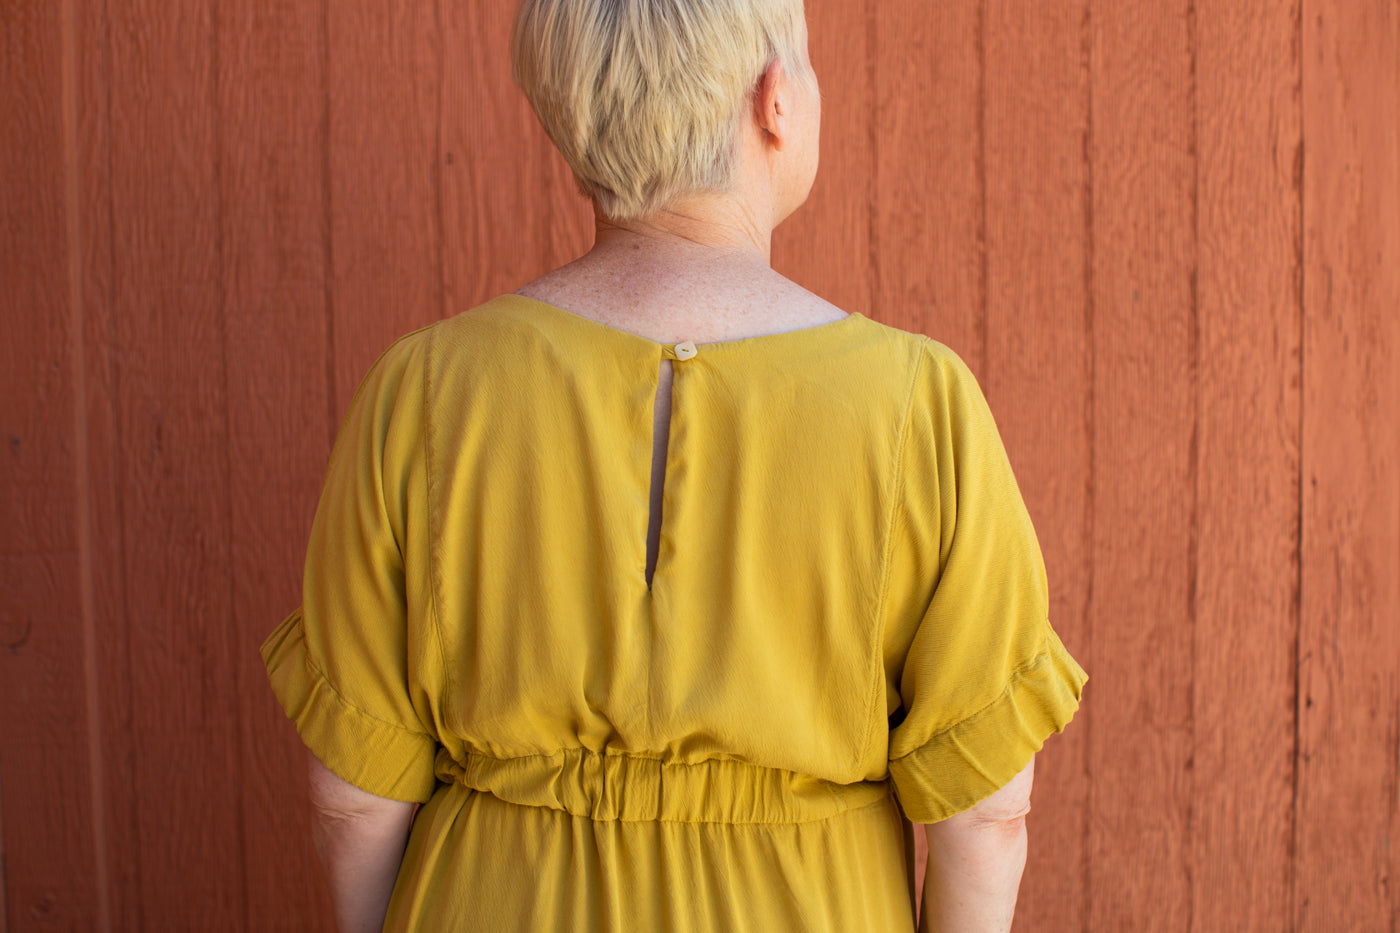 This is a photograph of the waist and back details of a woman wearing a yellow dress